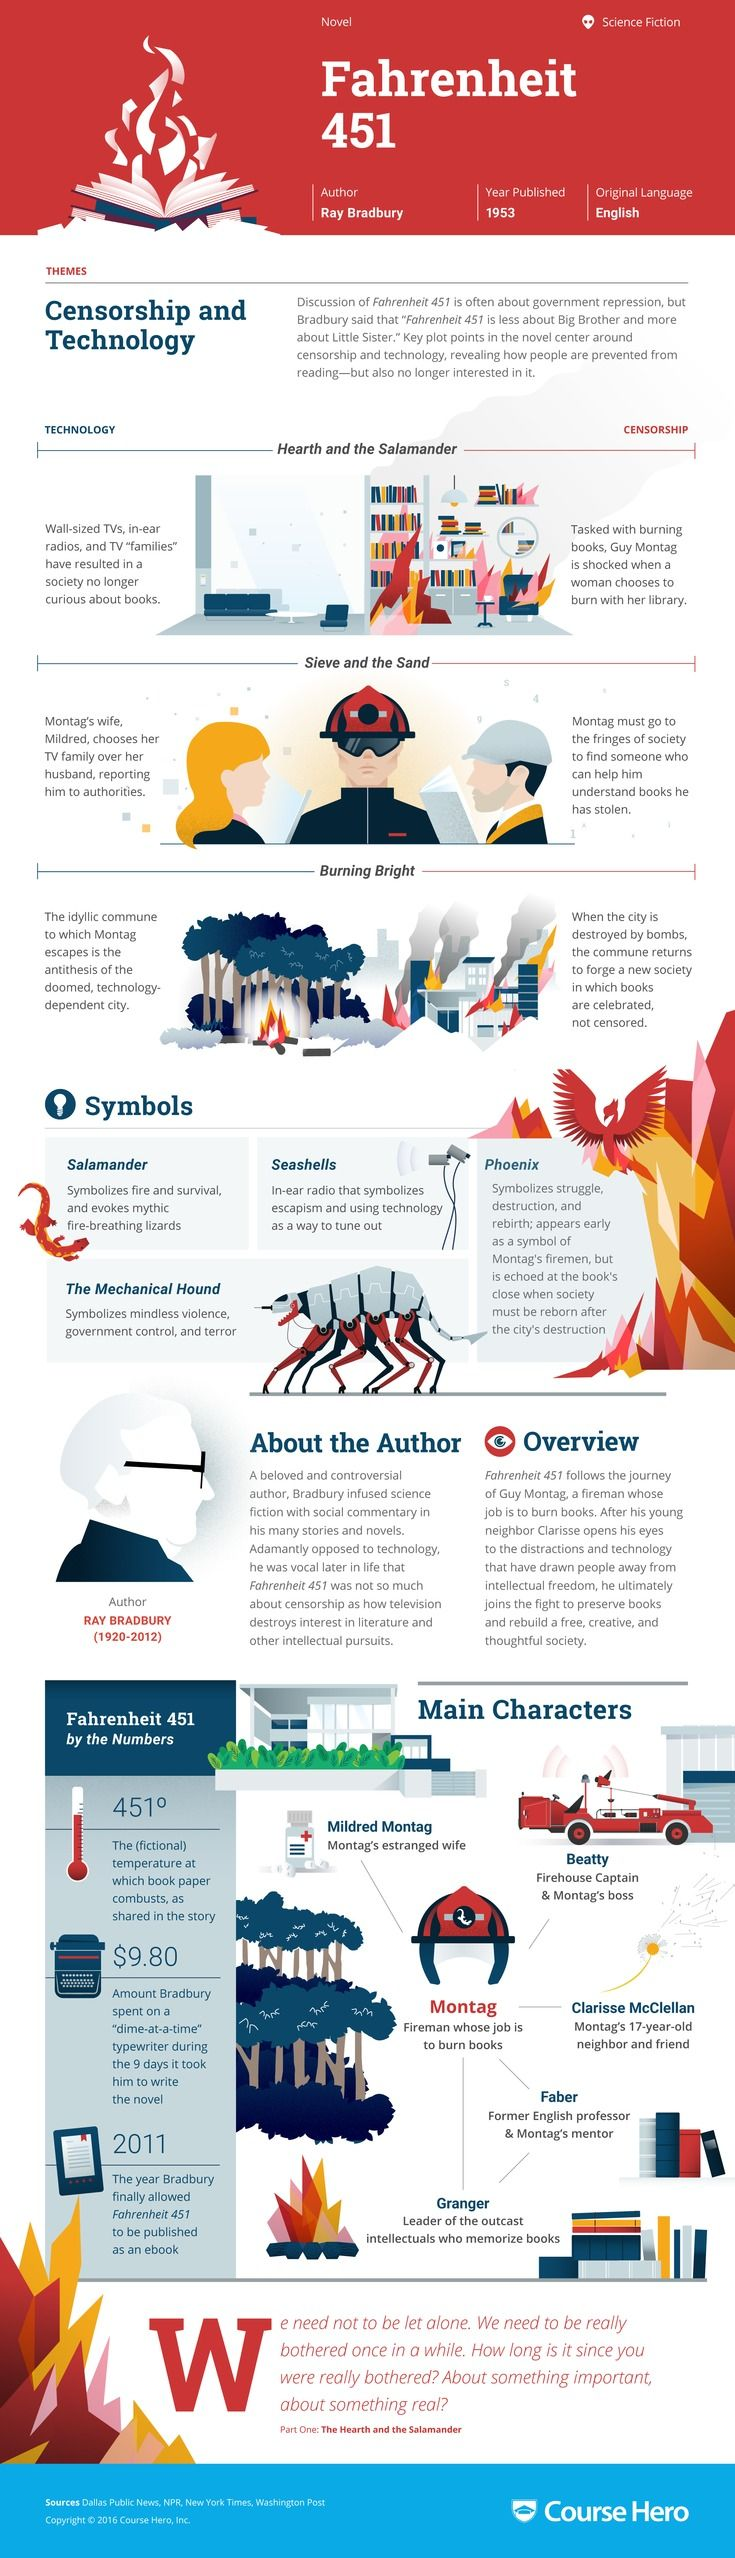 This 'Fahrenheit 451' infographic from Course Hero is as awesome as it is helpful. Check it out!